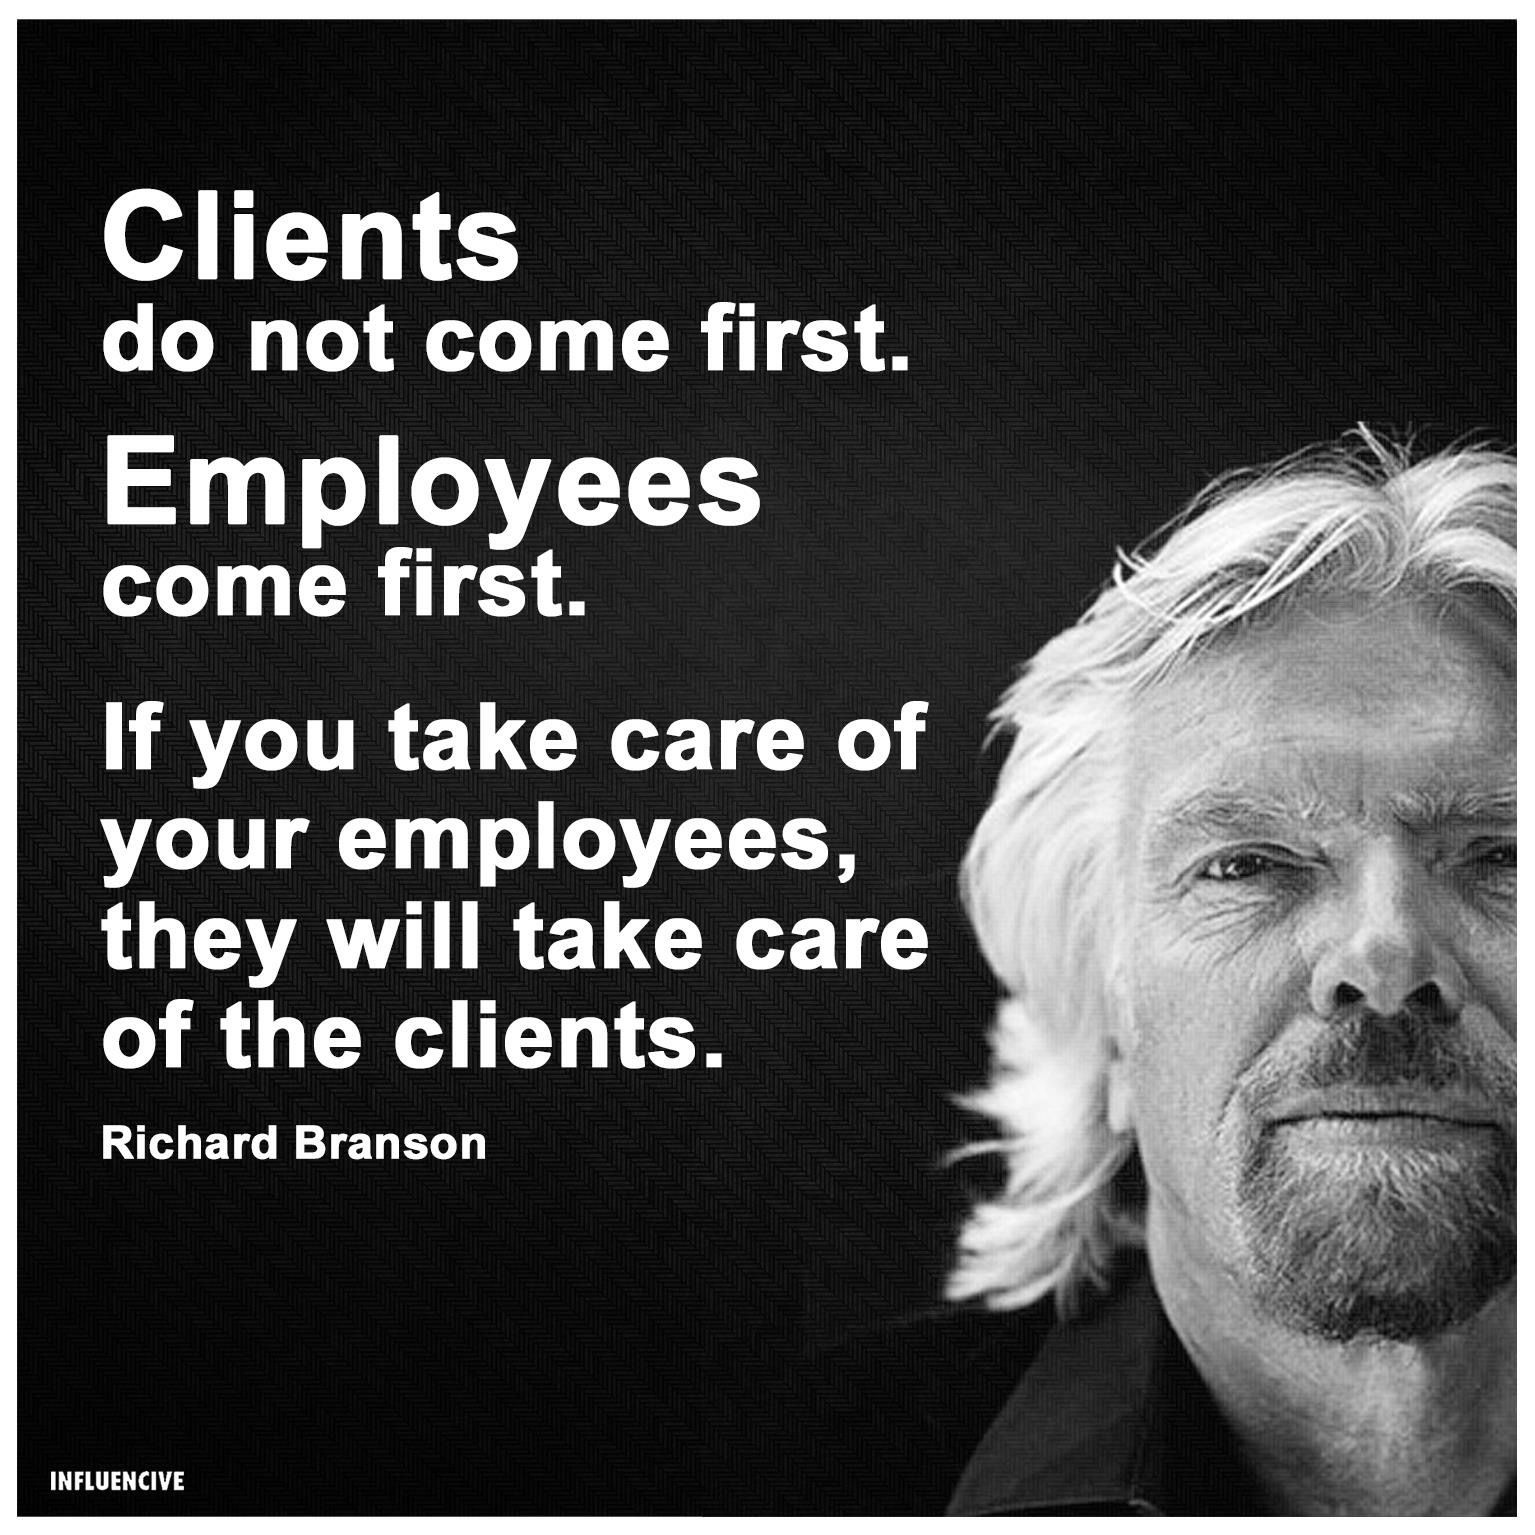 #RichardBranson #employeeappreciationideas